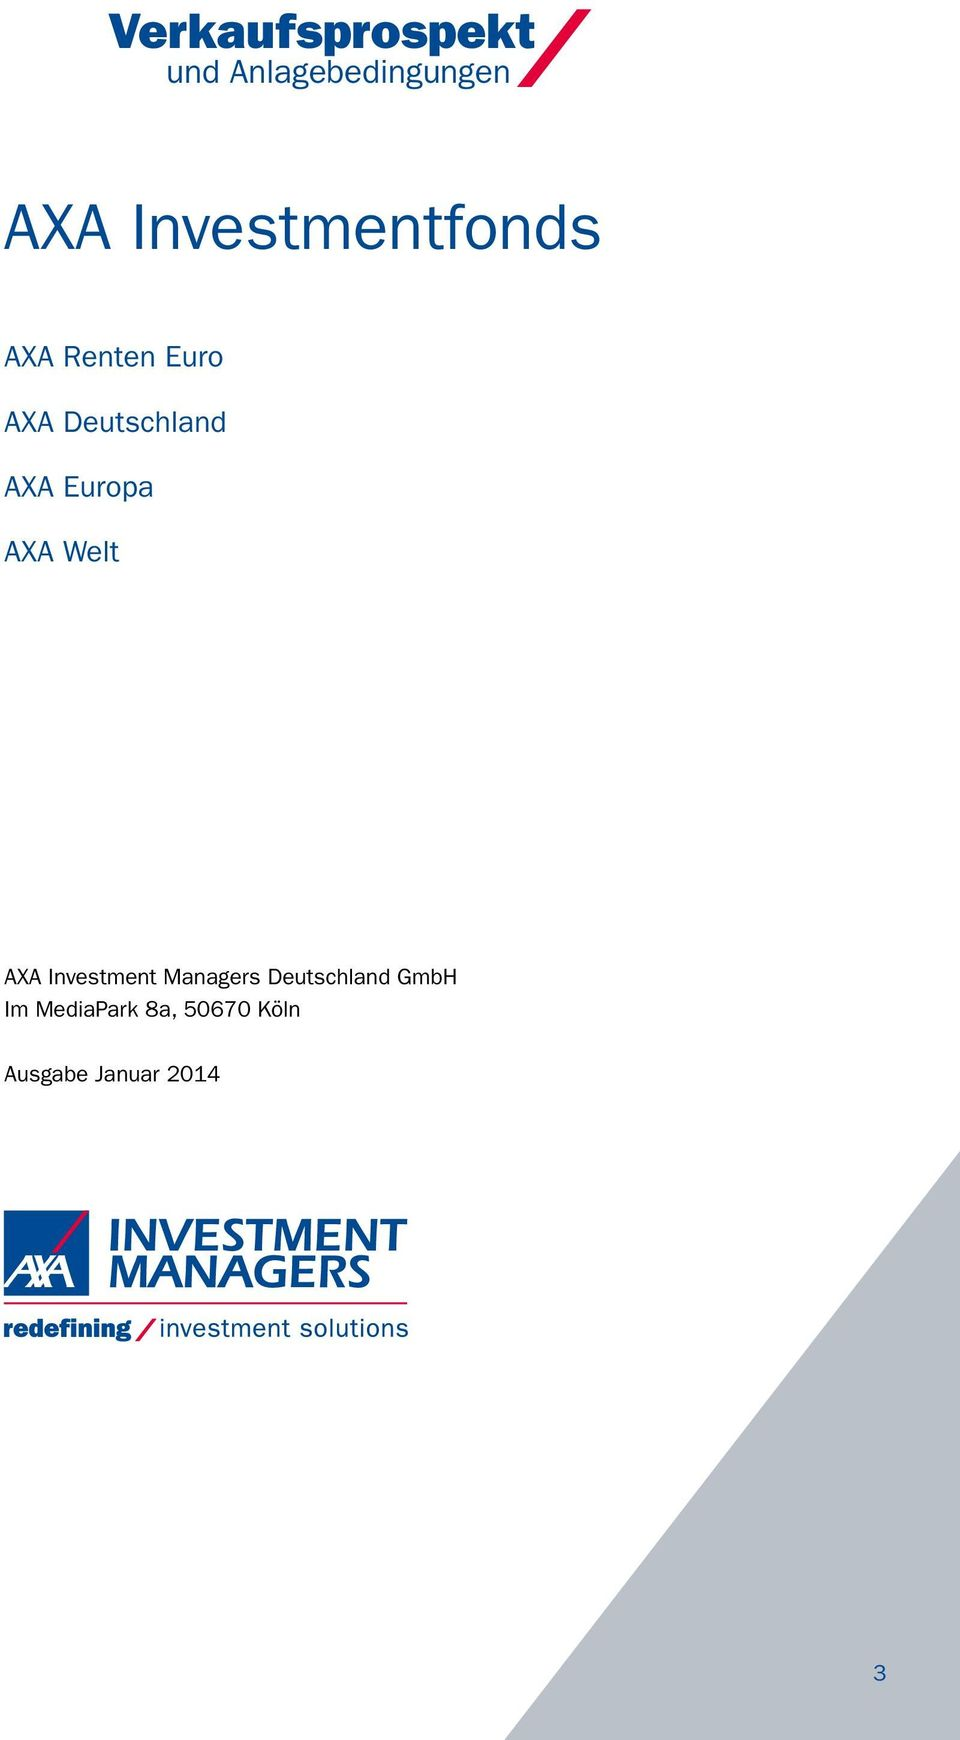 AXA Europa AXA Welt AXA Investment Managers